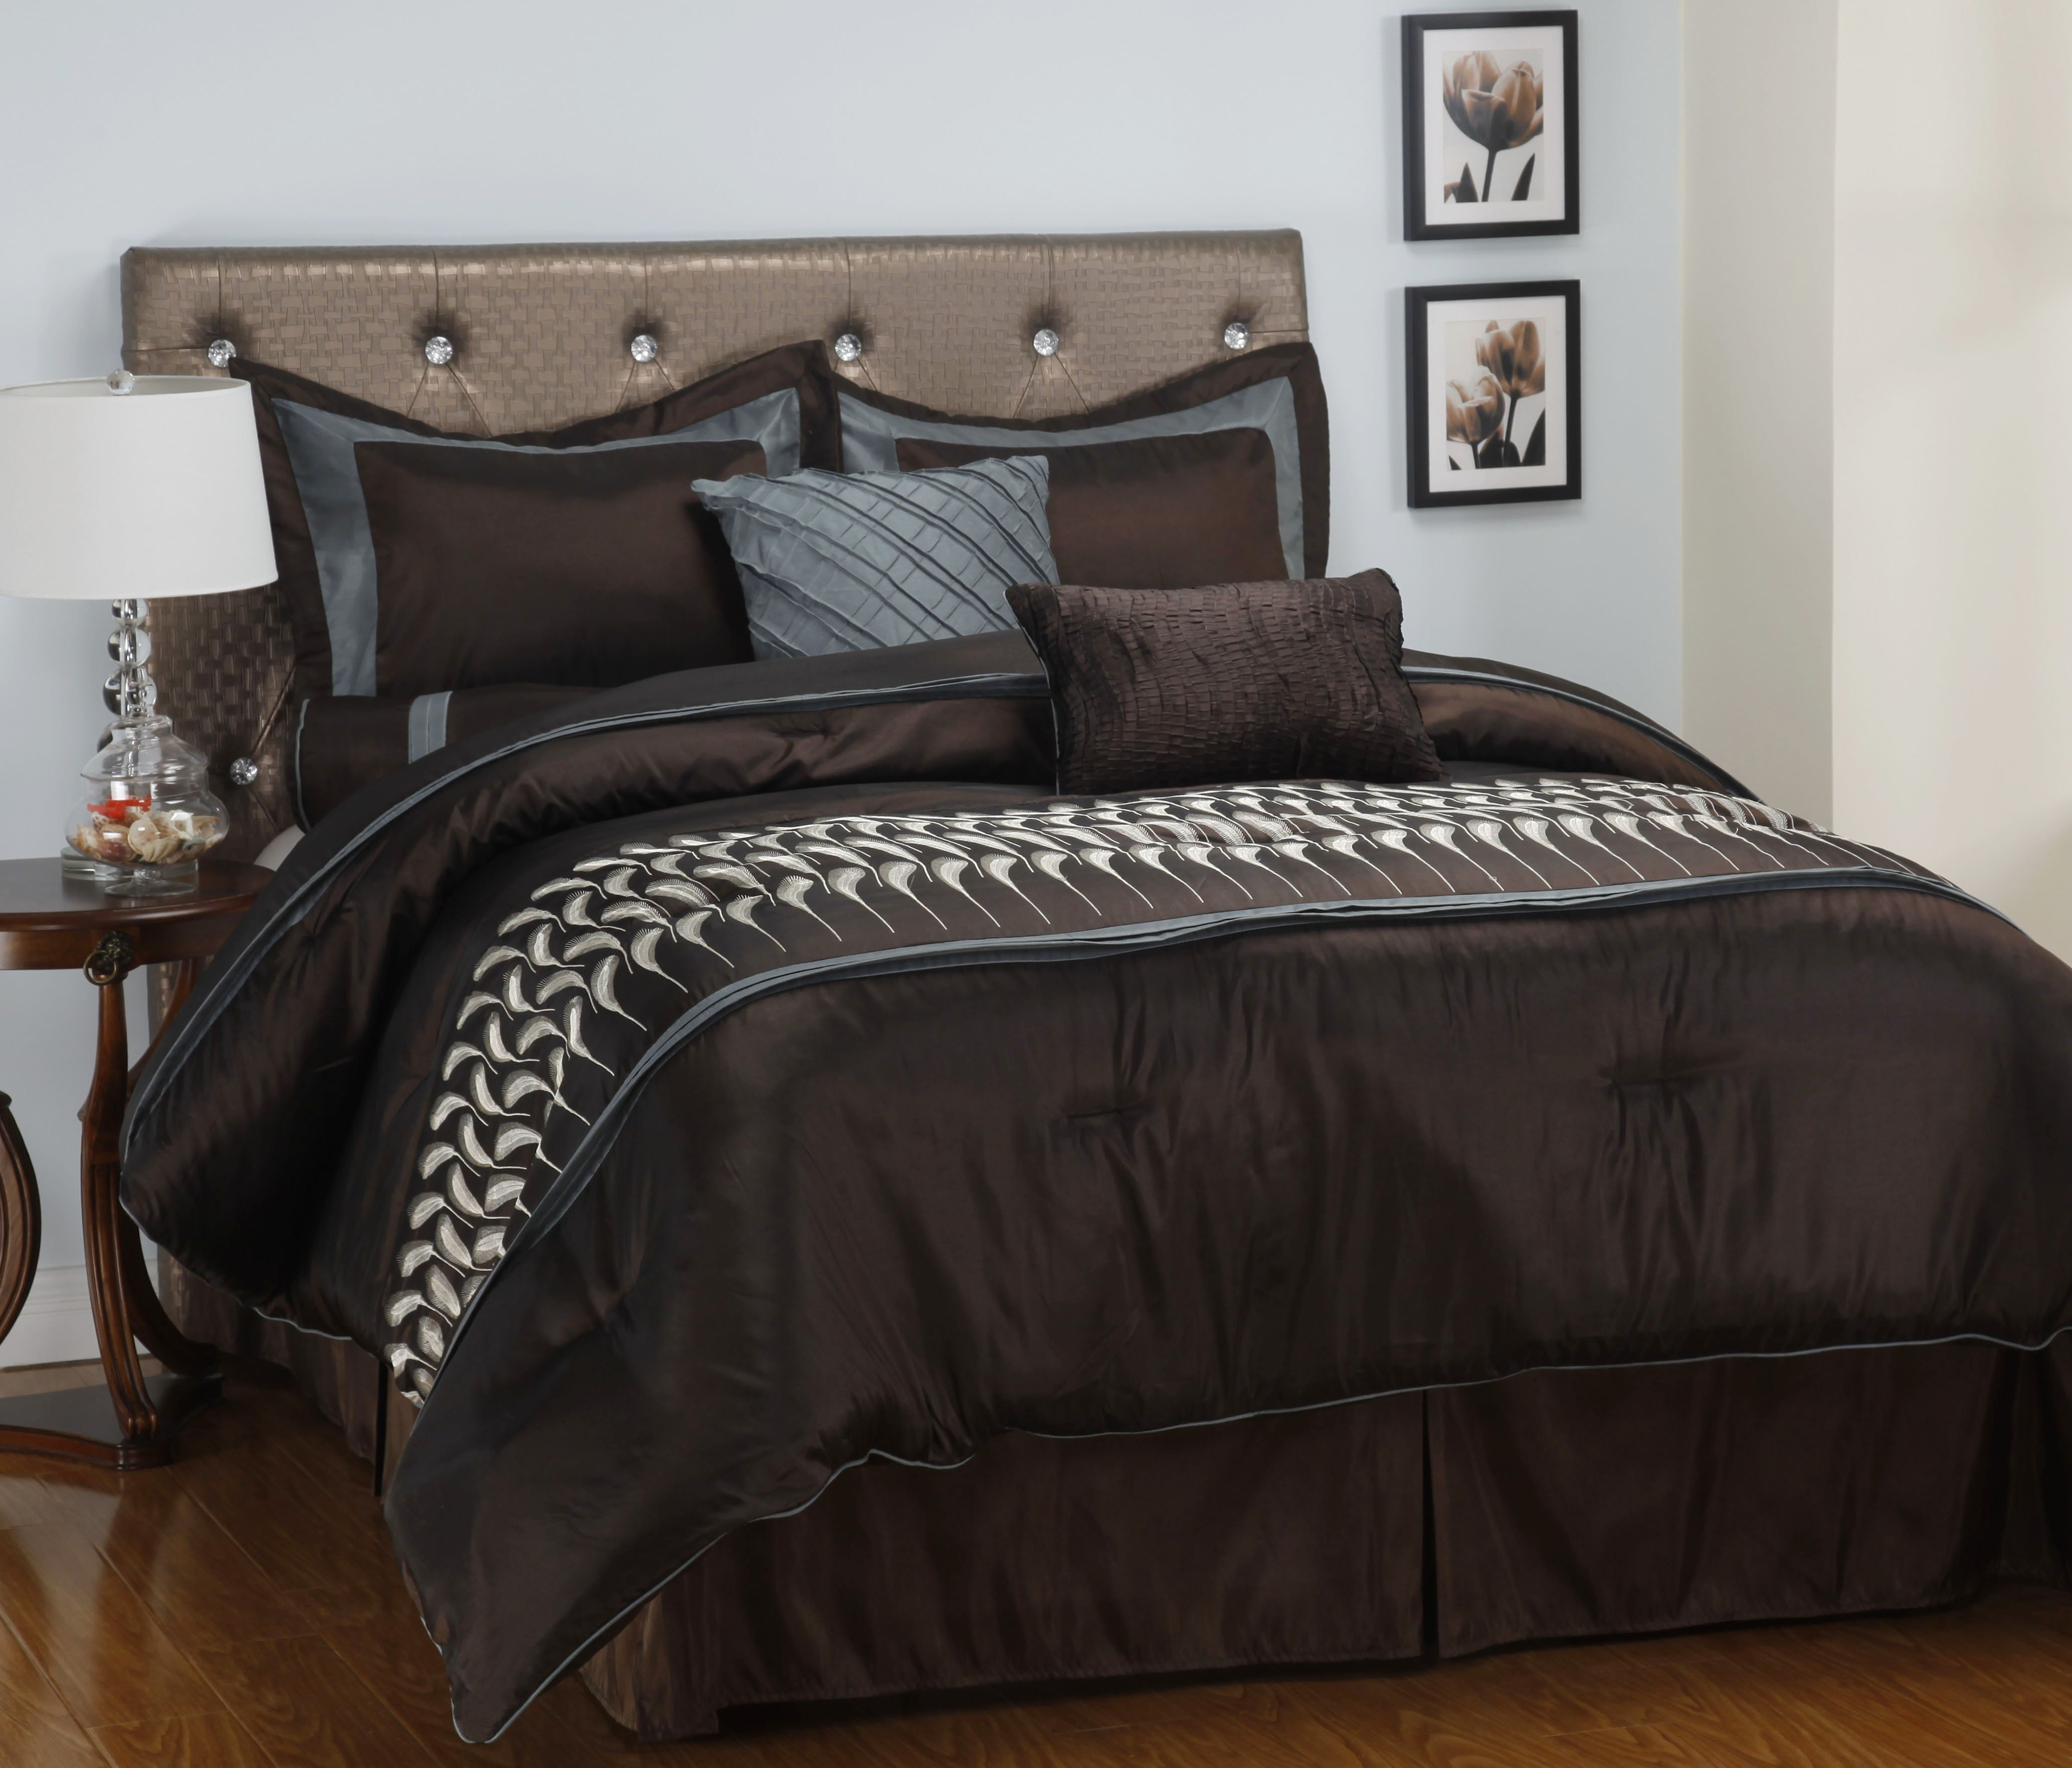 Best 7 12 Piece Bedding Comforter Set Shams Decorative Pillows 13 Designs Ebay With Pictures